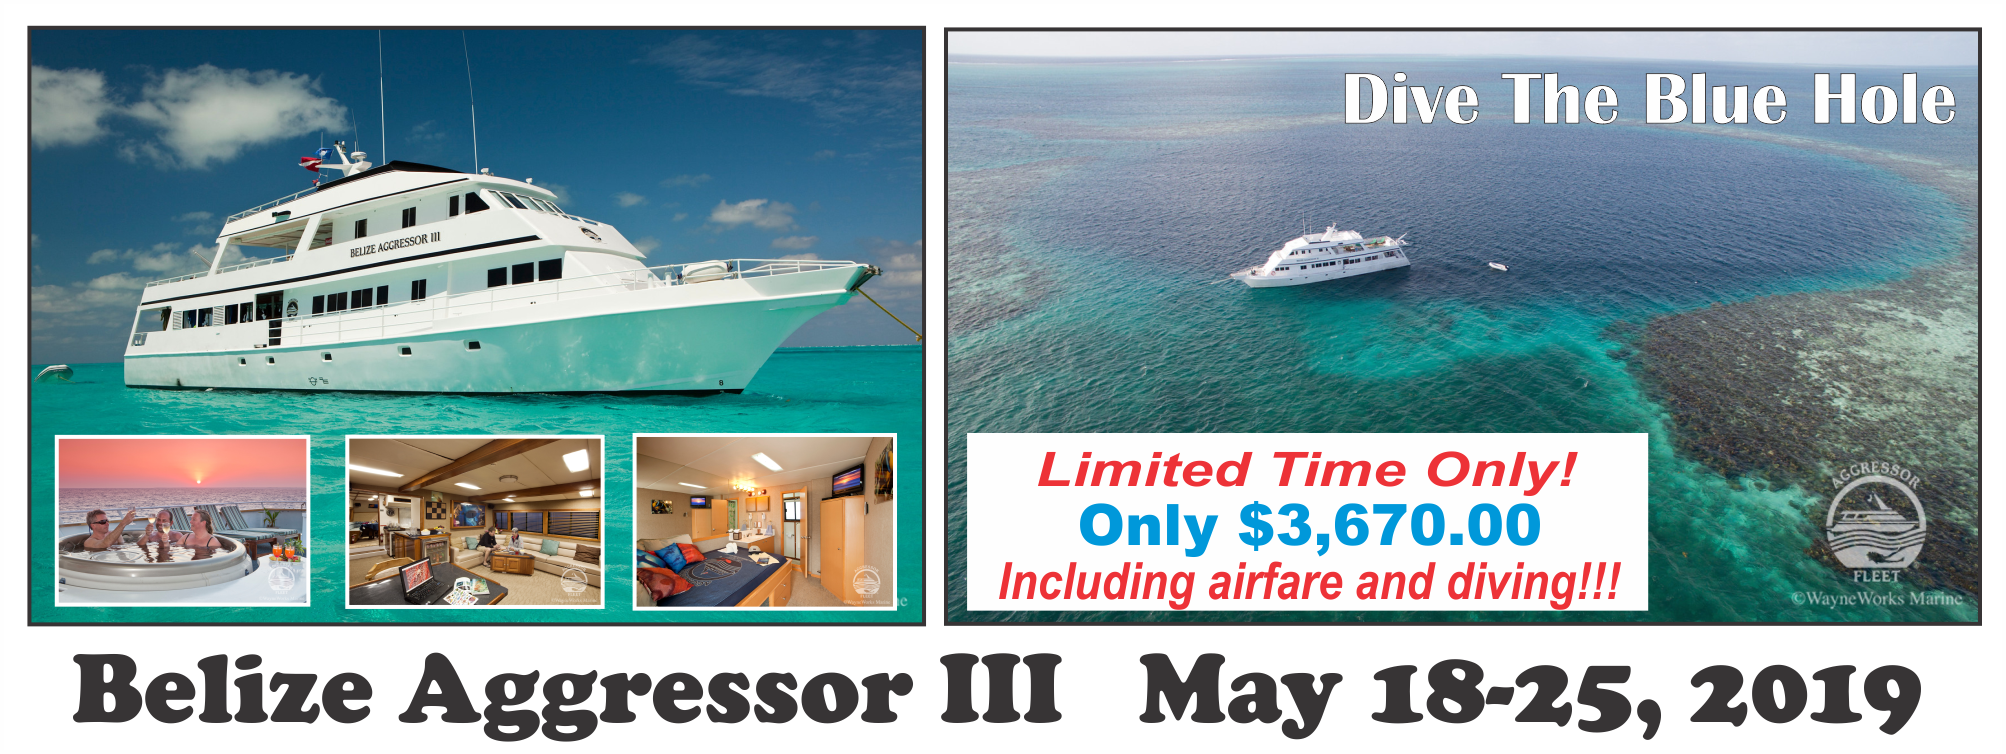 Belize Aggressor III May 18-25, 2019